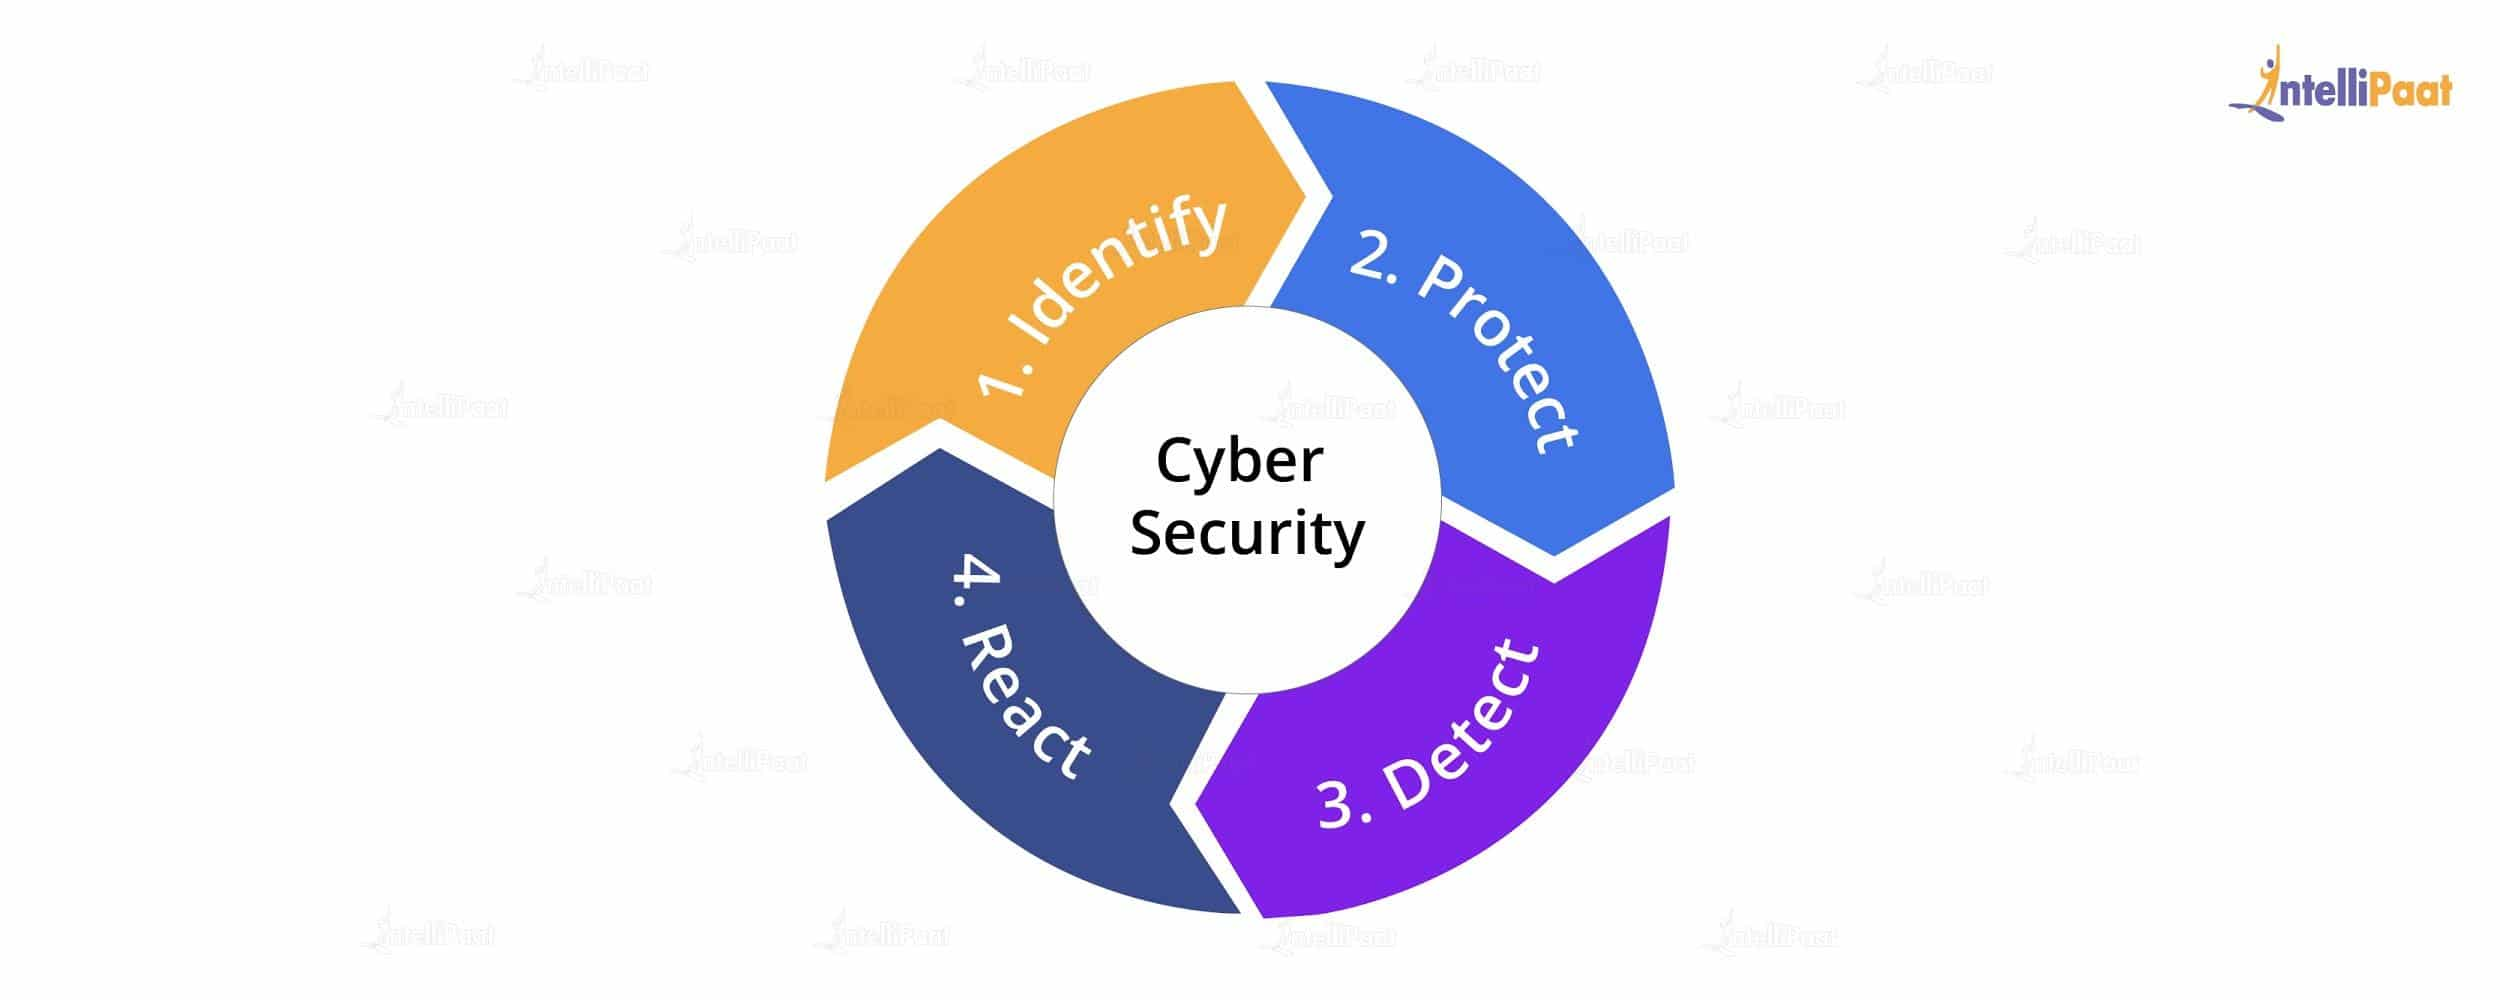 Phases of Cyber Security